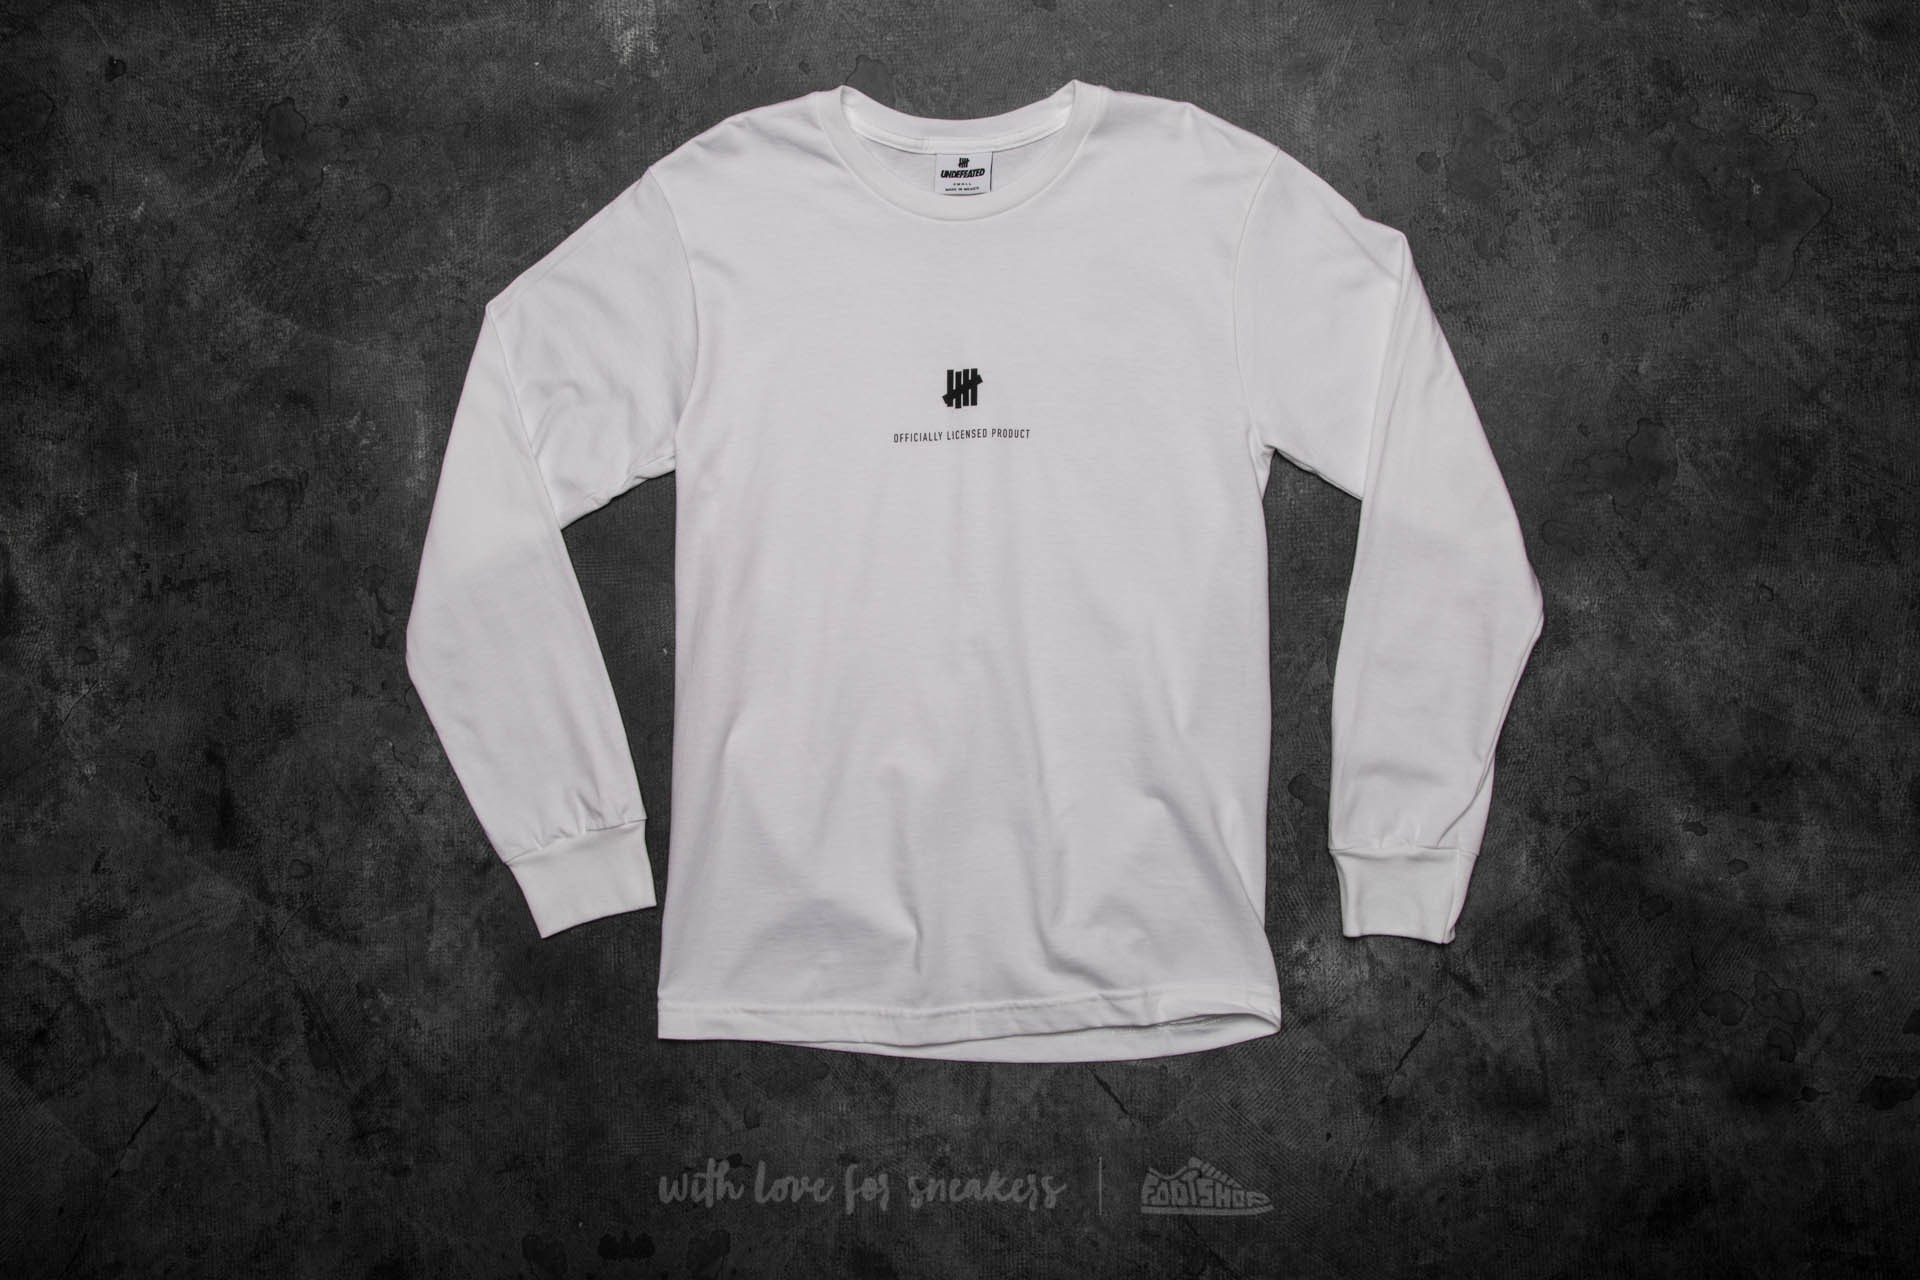 Undefeated Officially Licensed Product Tee White